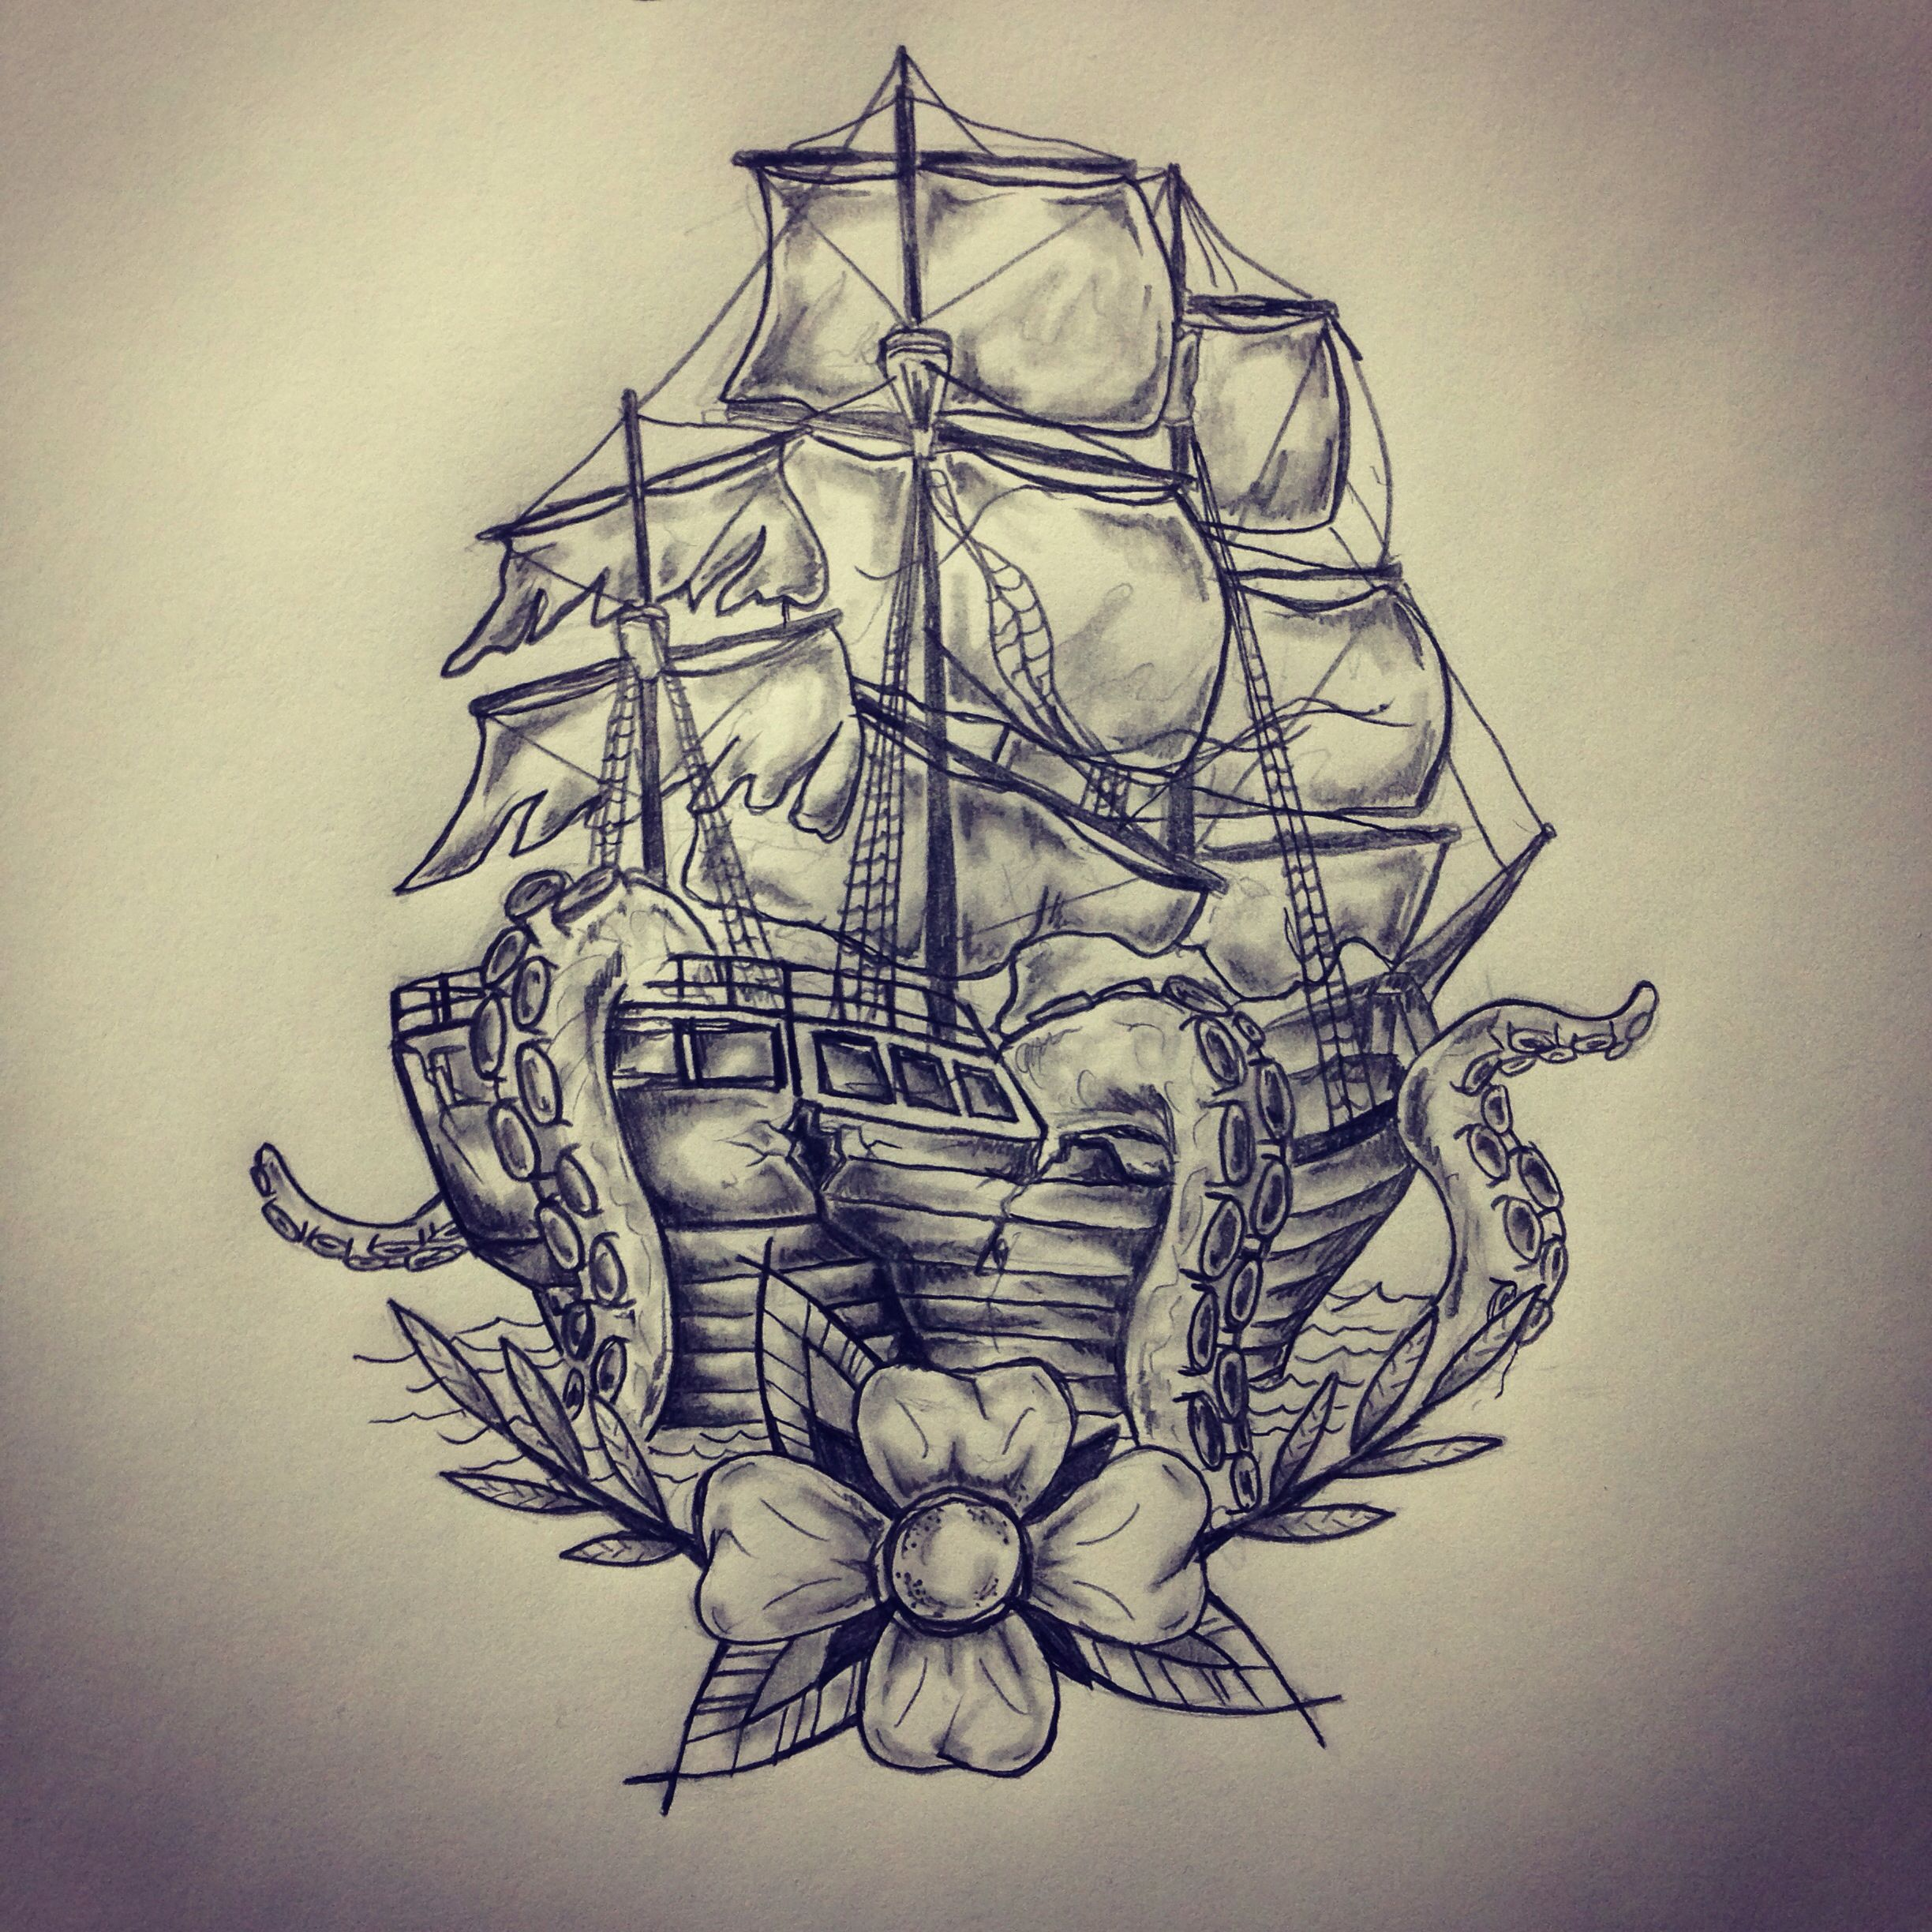 Ship Octopus Tattoo Sketch Drawing By Ranz